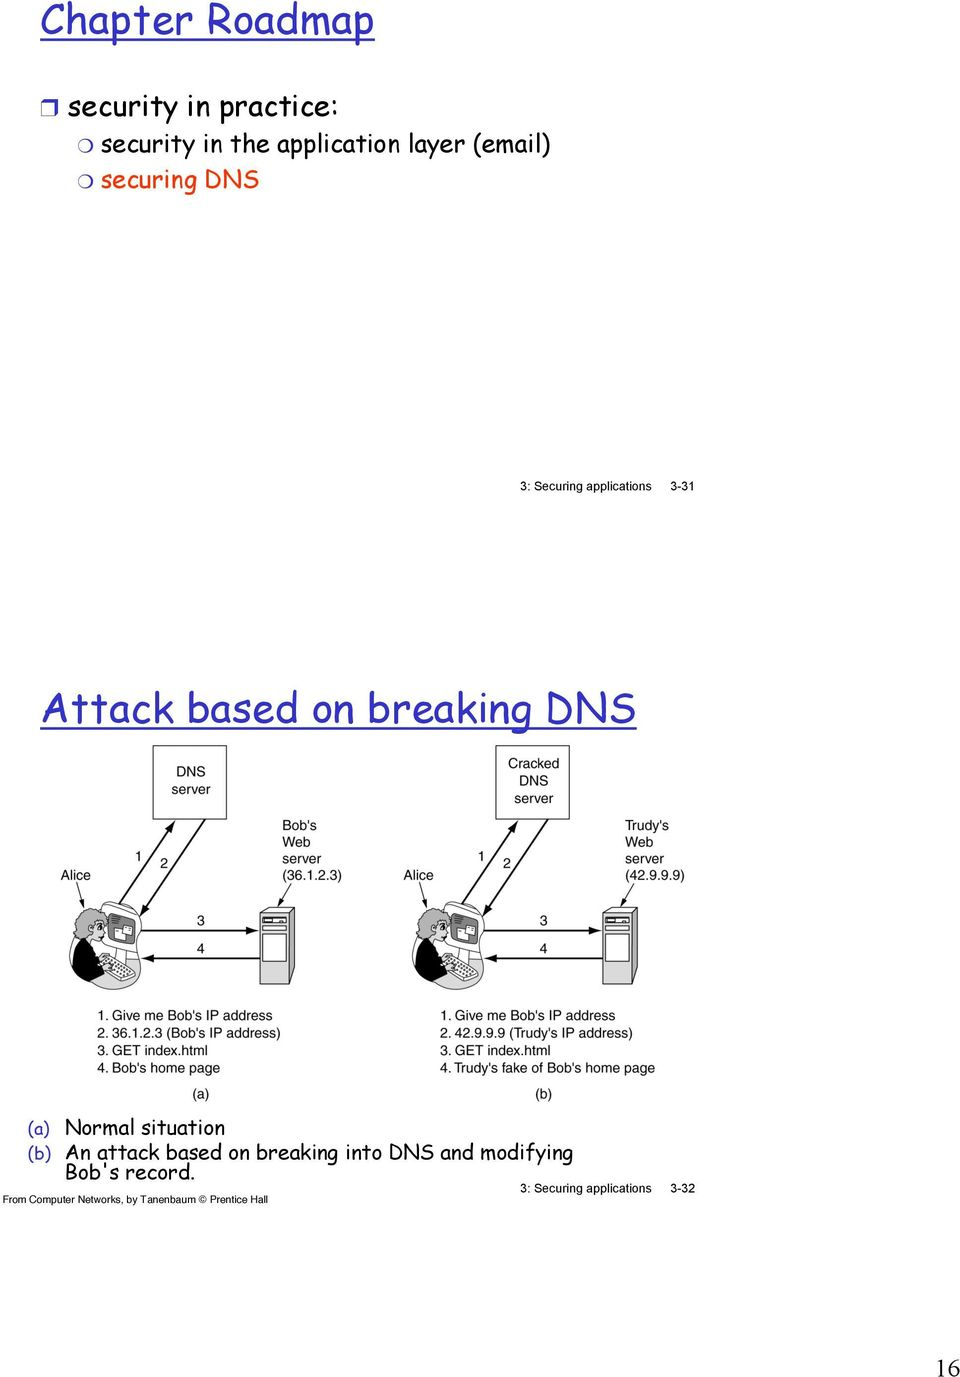 attack based on breaking into DNS and modifying Bob's record.